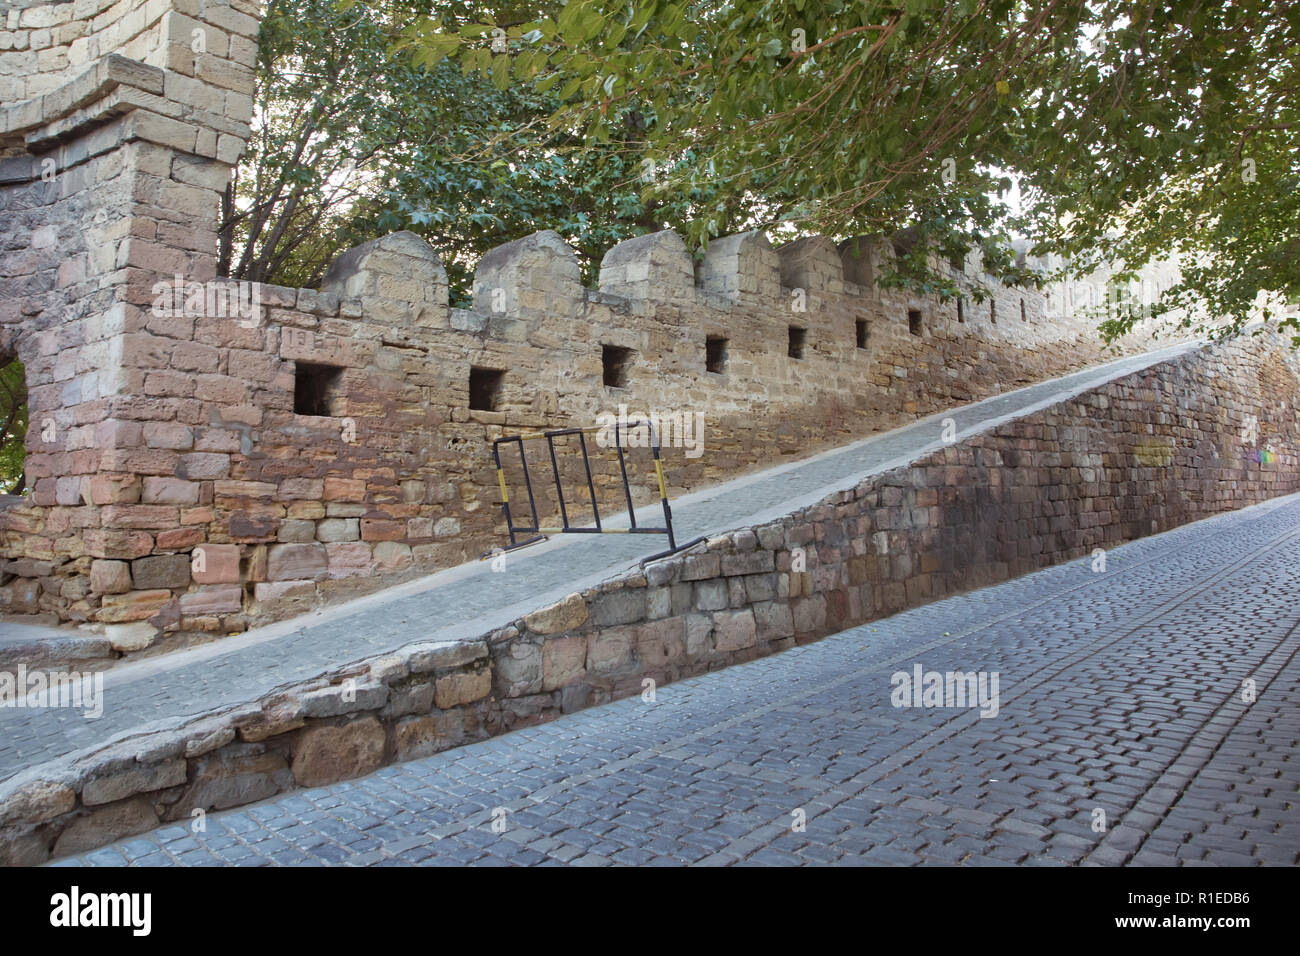 Azerbaijan . Gate of the old fortress, entrance to Baku old town. Baku, Azerbaijan. Walls of the Old City in Baku . Icheri Sheher is a UNESCO World He Stock Photo